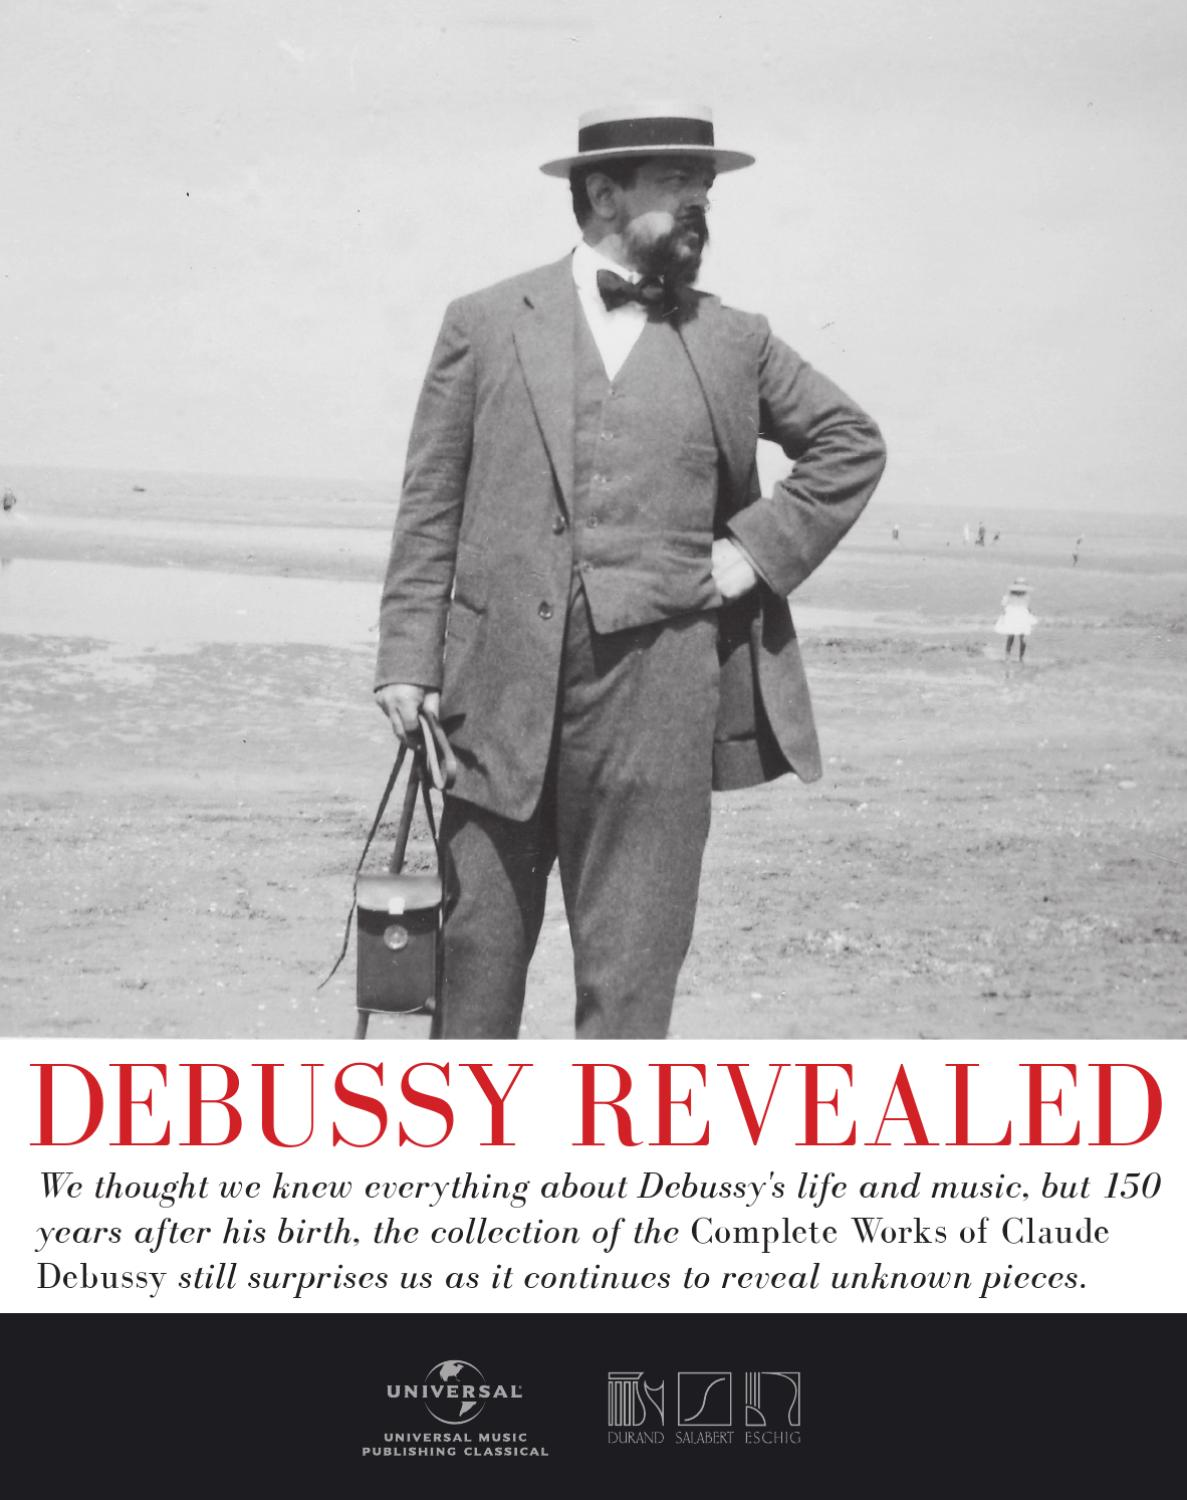 account of the life and works of claude debussy Part biography, part criticism, and part analysis, this fascinating study of one of  music's greatest geniuses is above all an authoritative commentary on the entire .